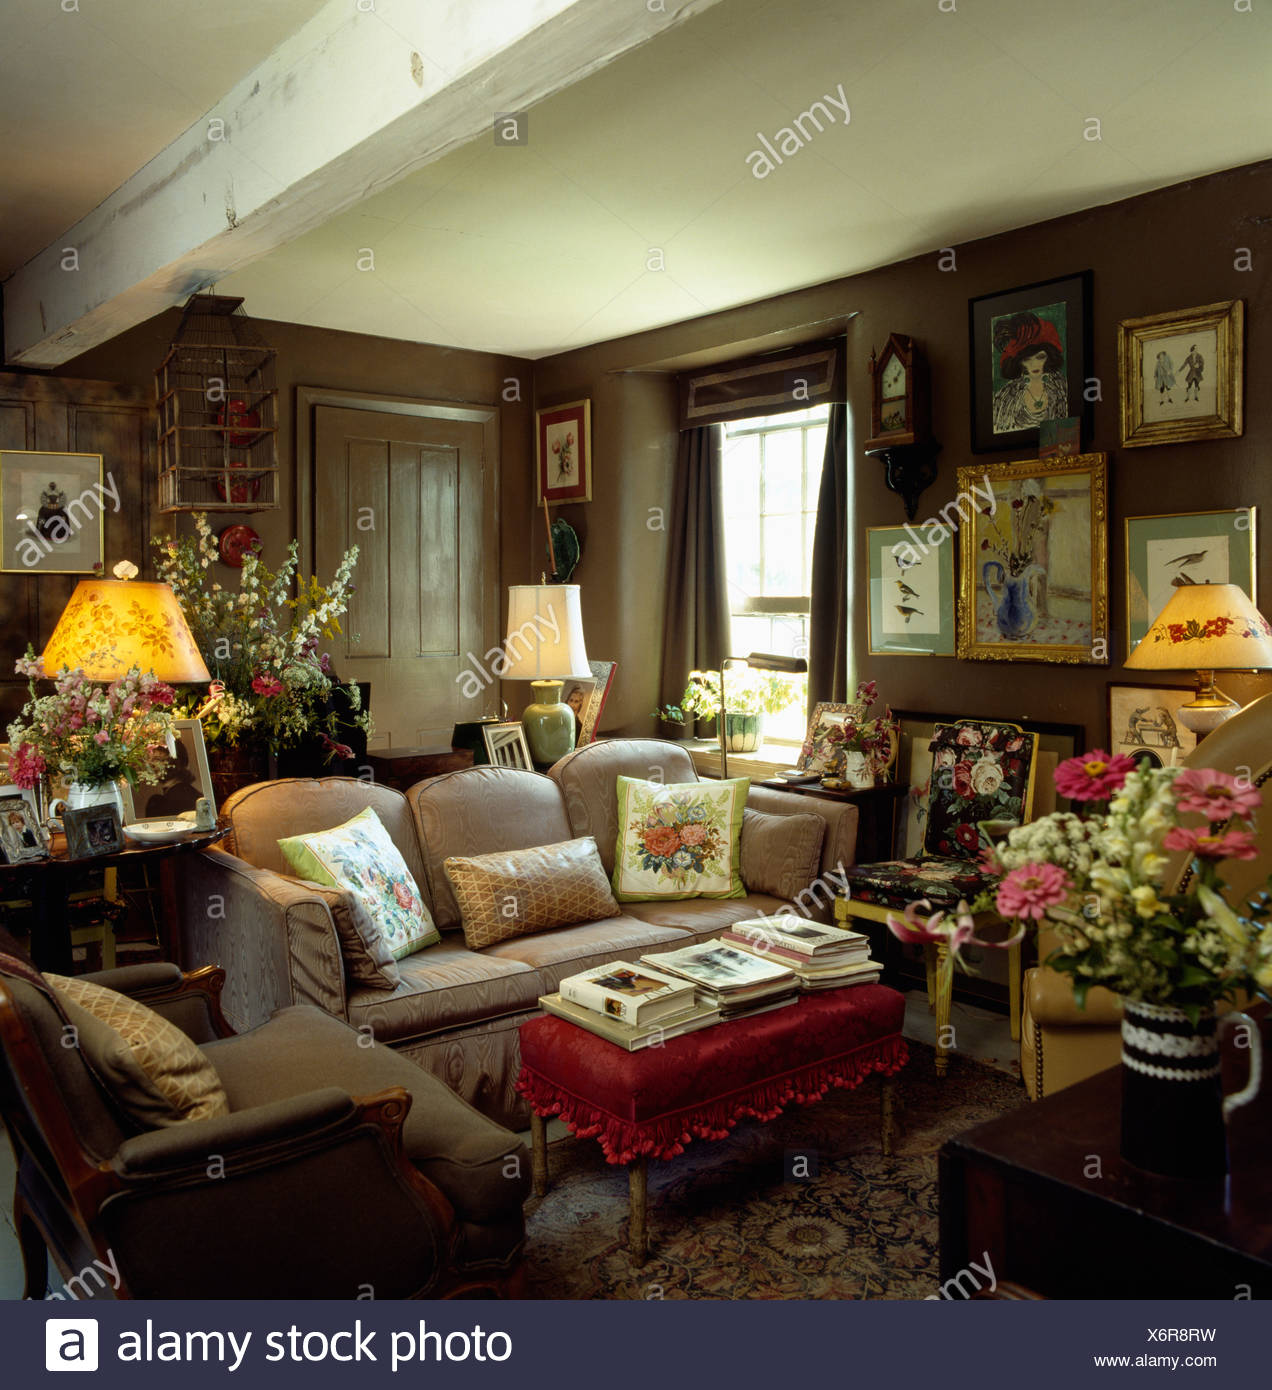 https www alamy com lighted lamps and pictures on walls of brown country livingroom with low ceiling and comfortable furniture image279565661 html